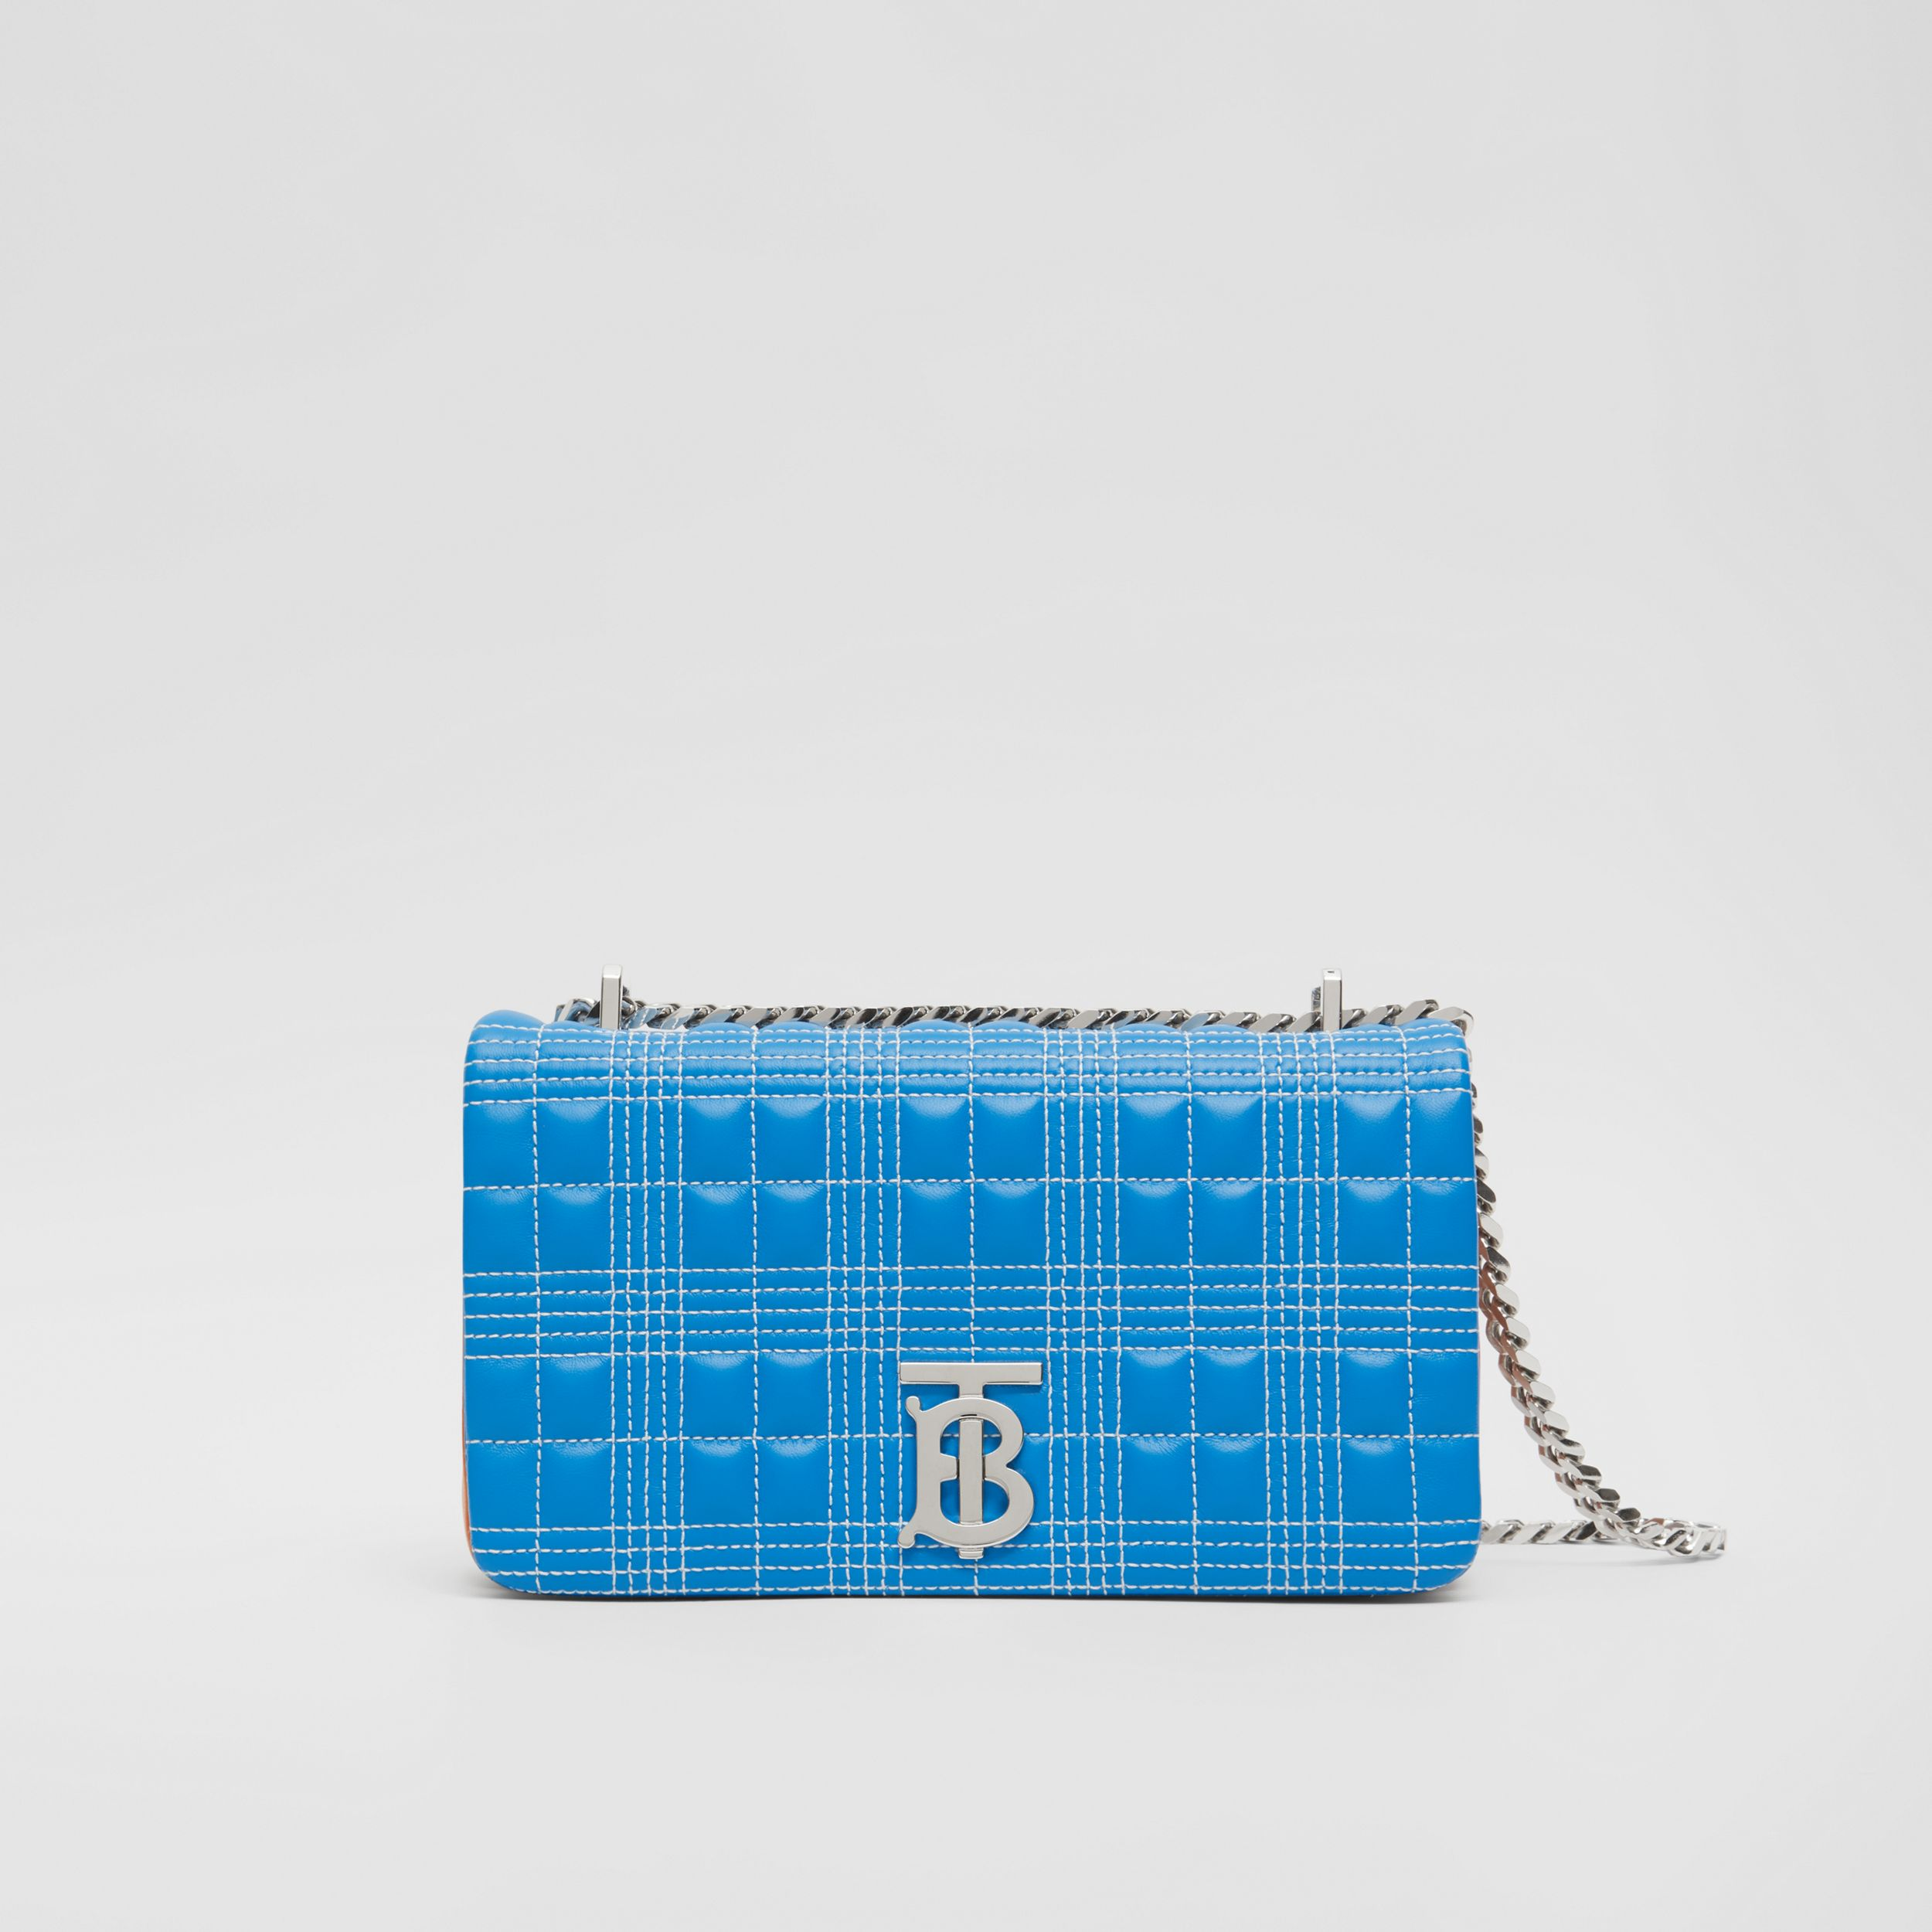 Small Quilted Tri-tone Lambskin Lola Bag in Cyan Blue/orange/pink - Women | Burberry - 1